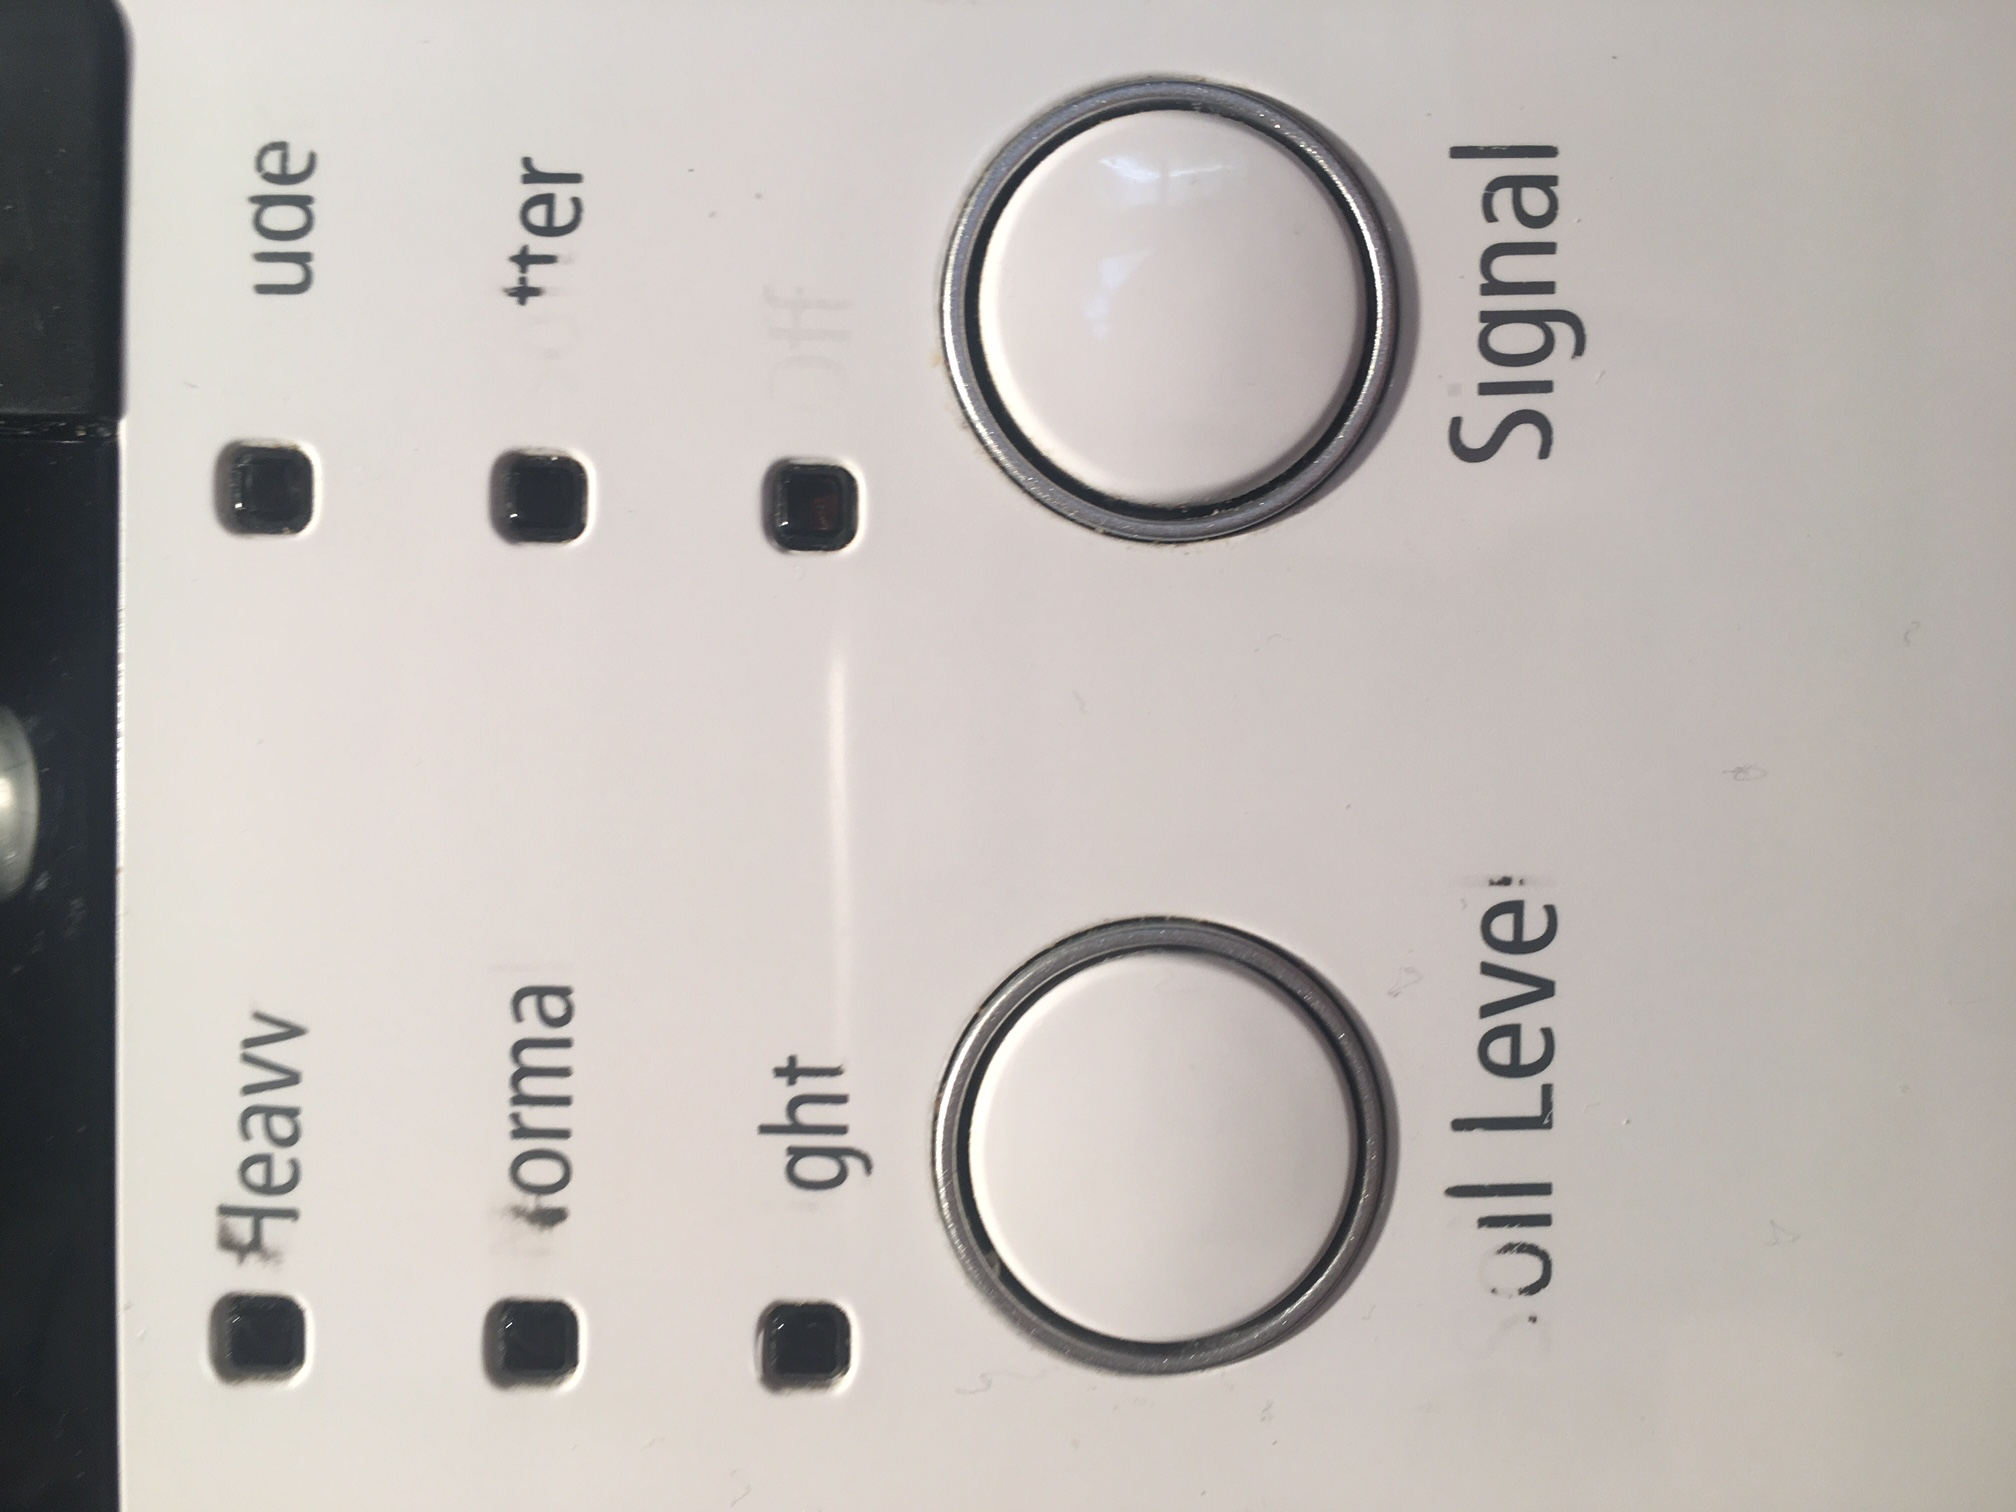 Solved: Front load washer control panel words are smearing